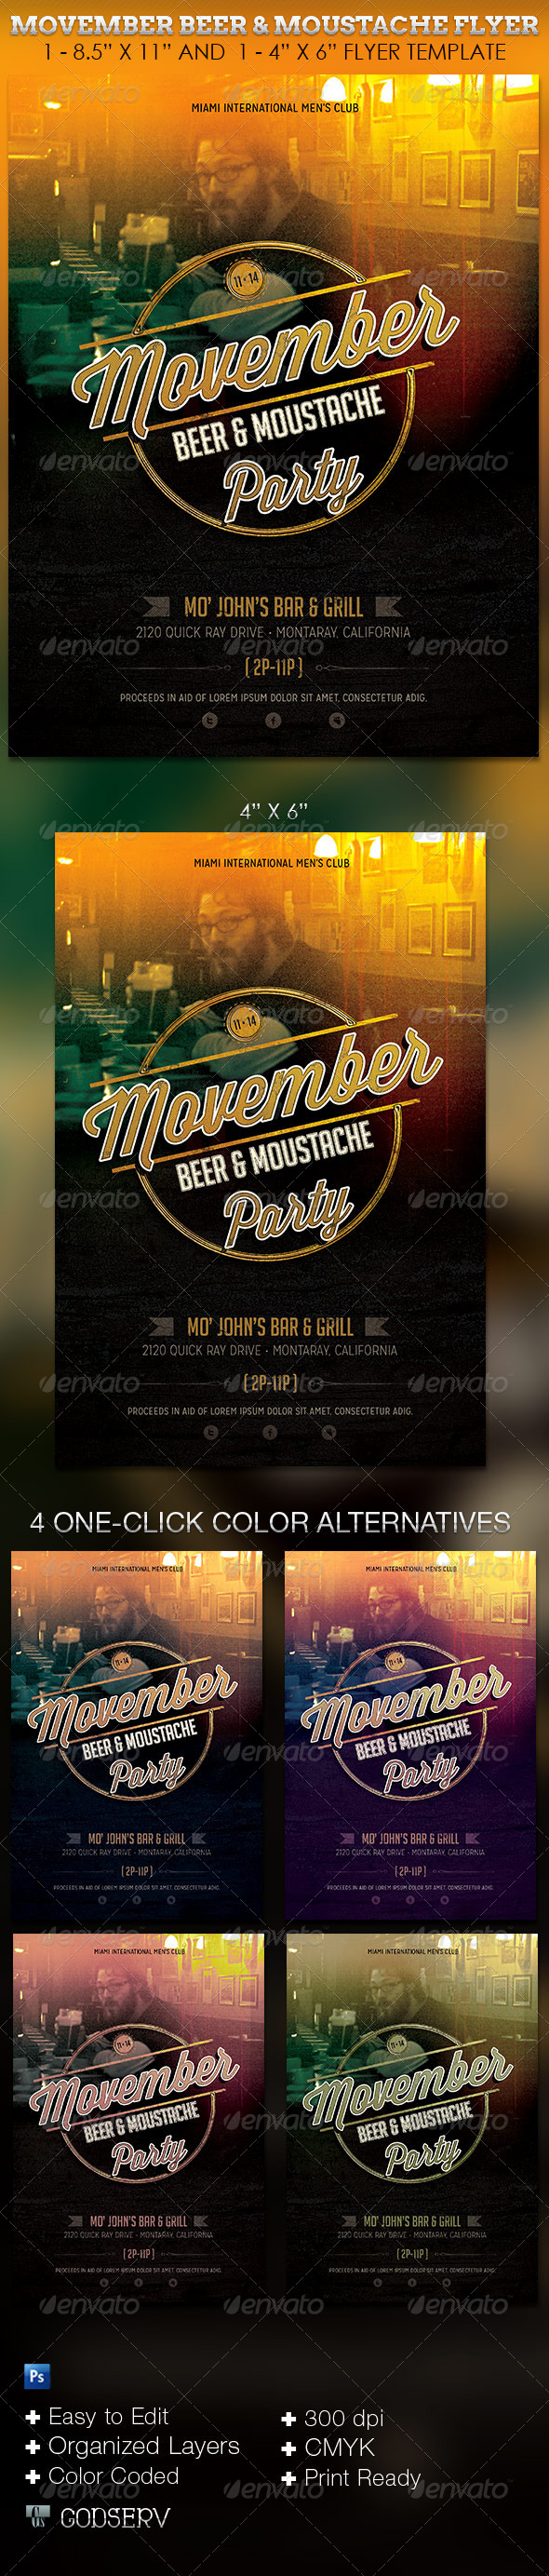 Movember Beer Moustache Party Flyer Template - Clubs & Parties Events